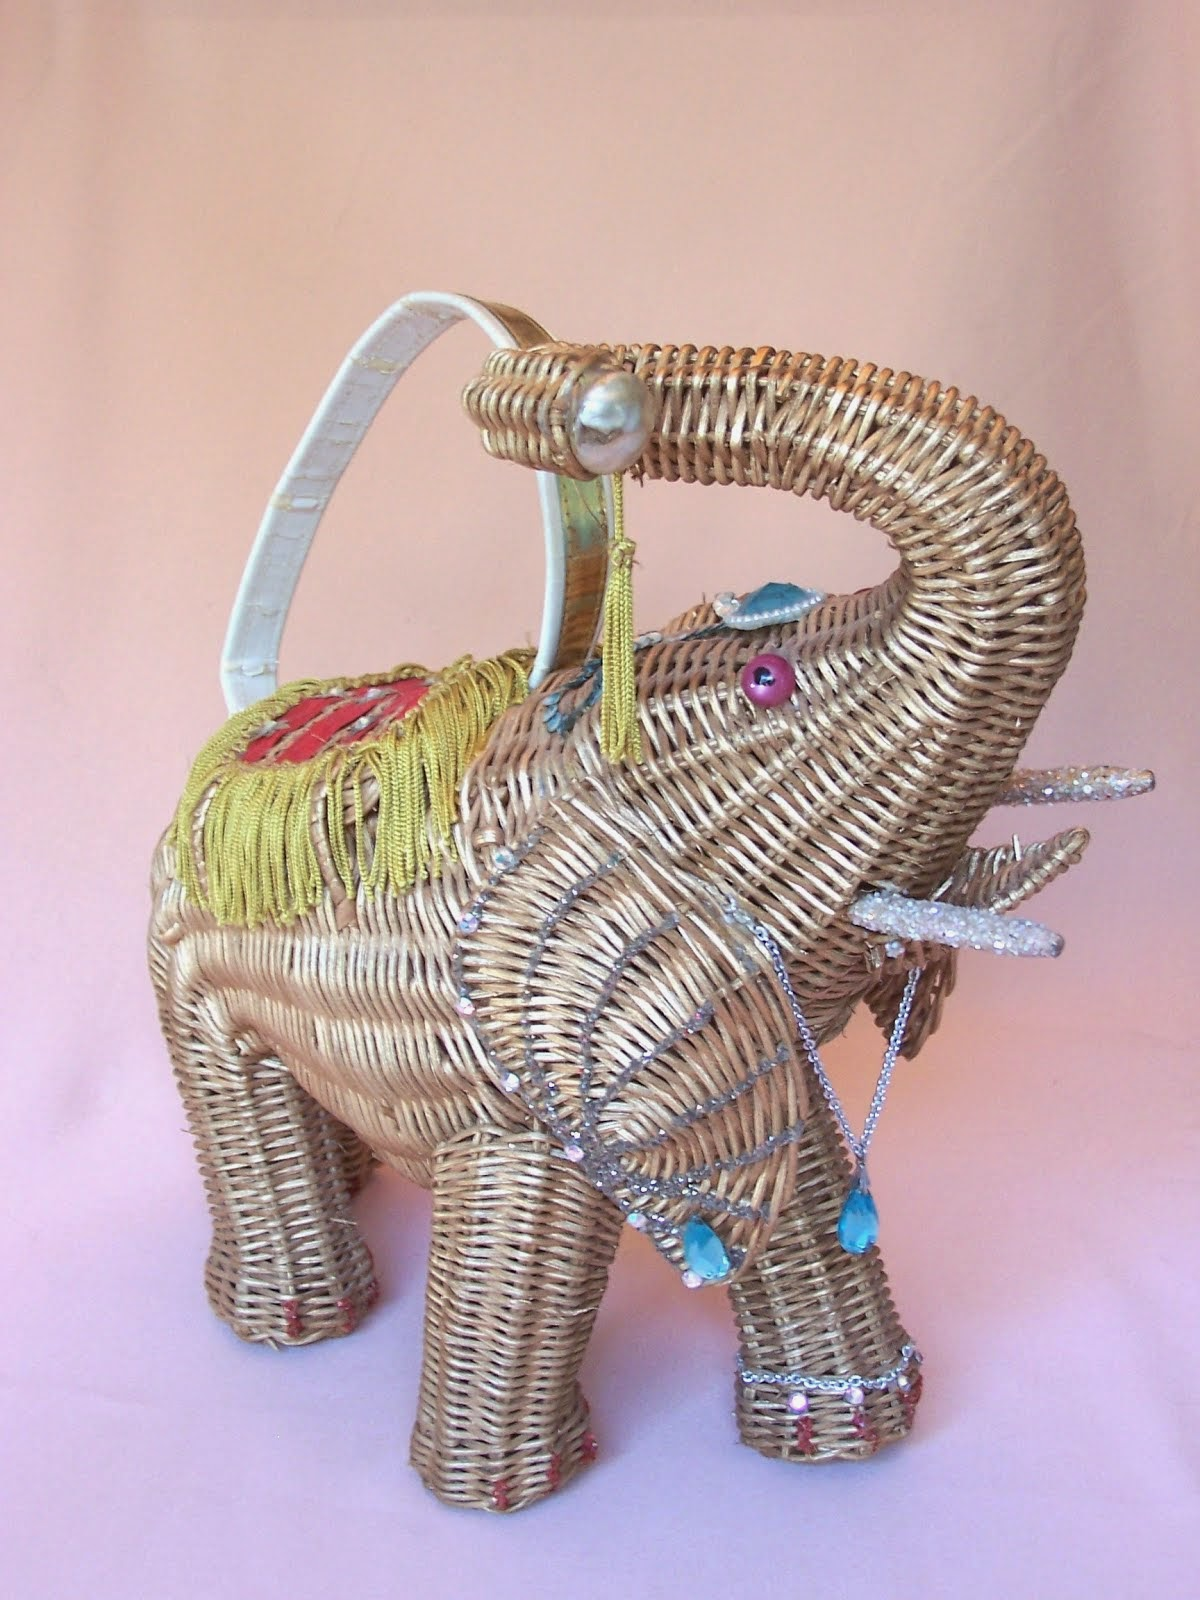 Midas of Miami Wicker Elephant Purse